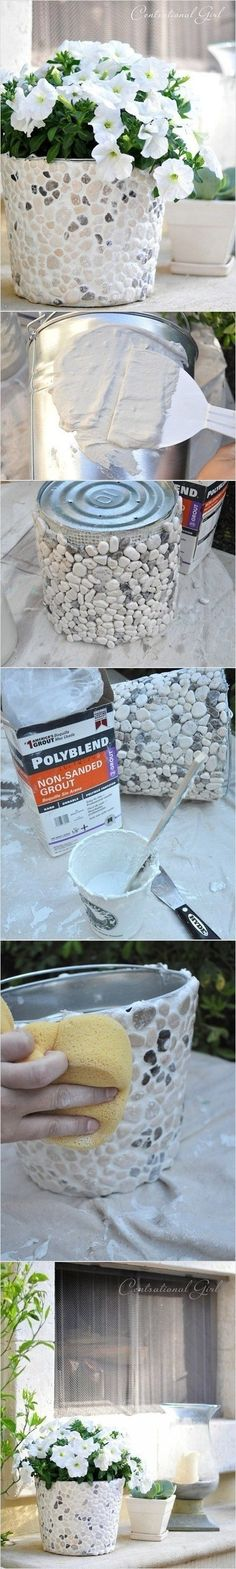 DIY – Pebble flower pot